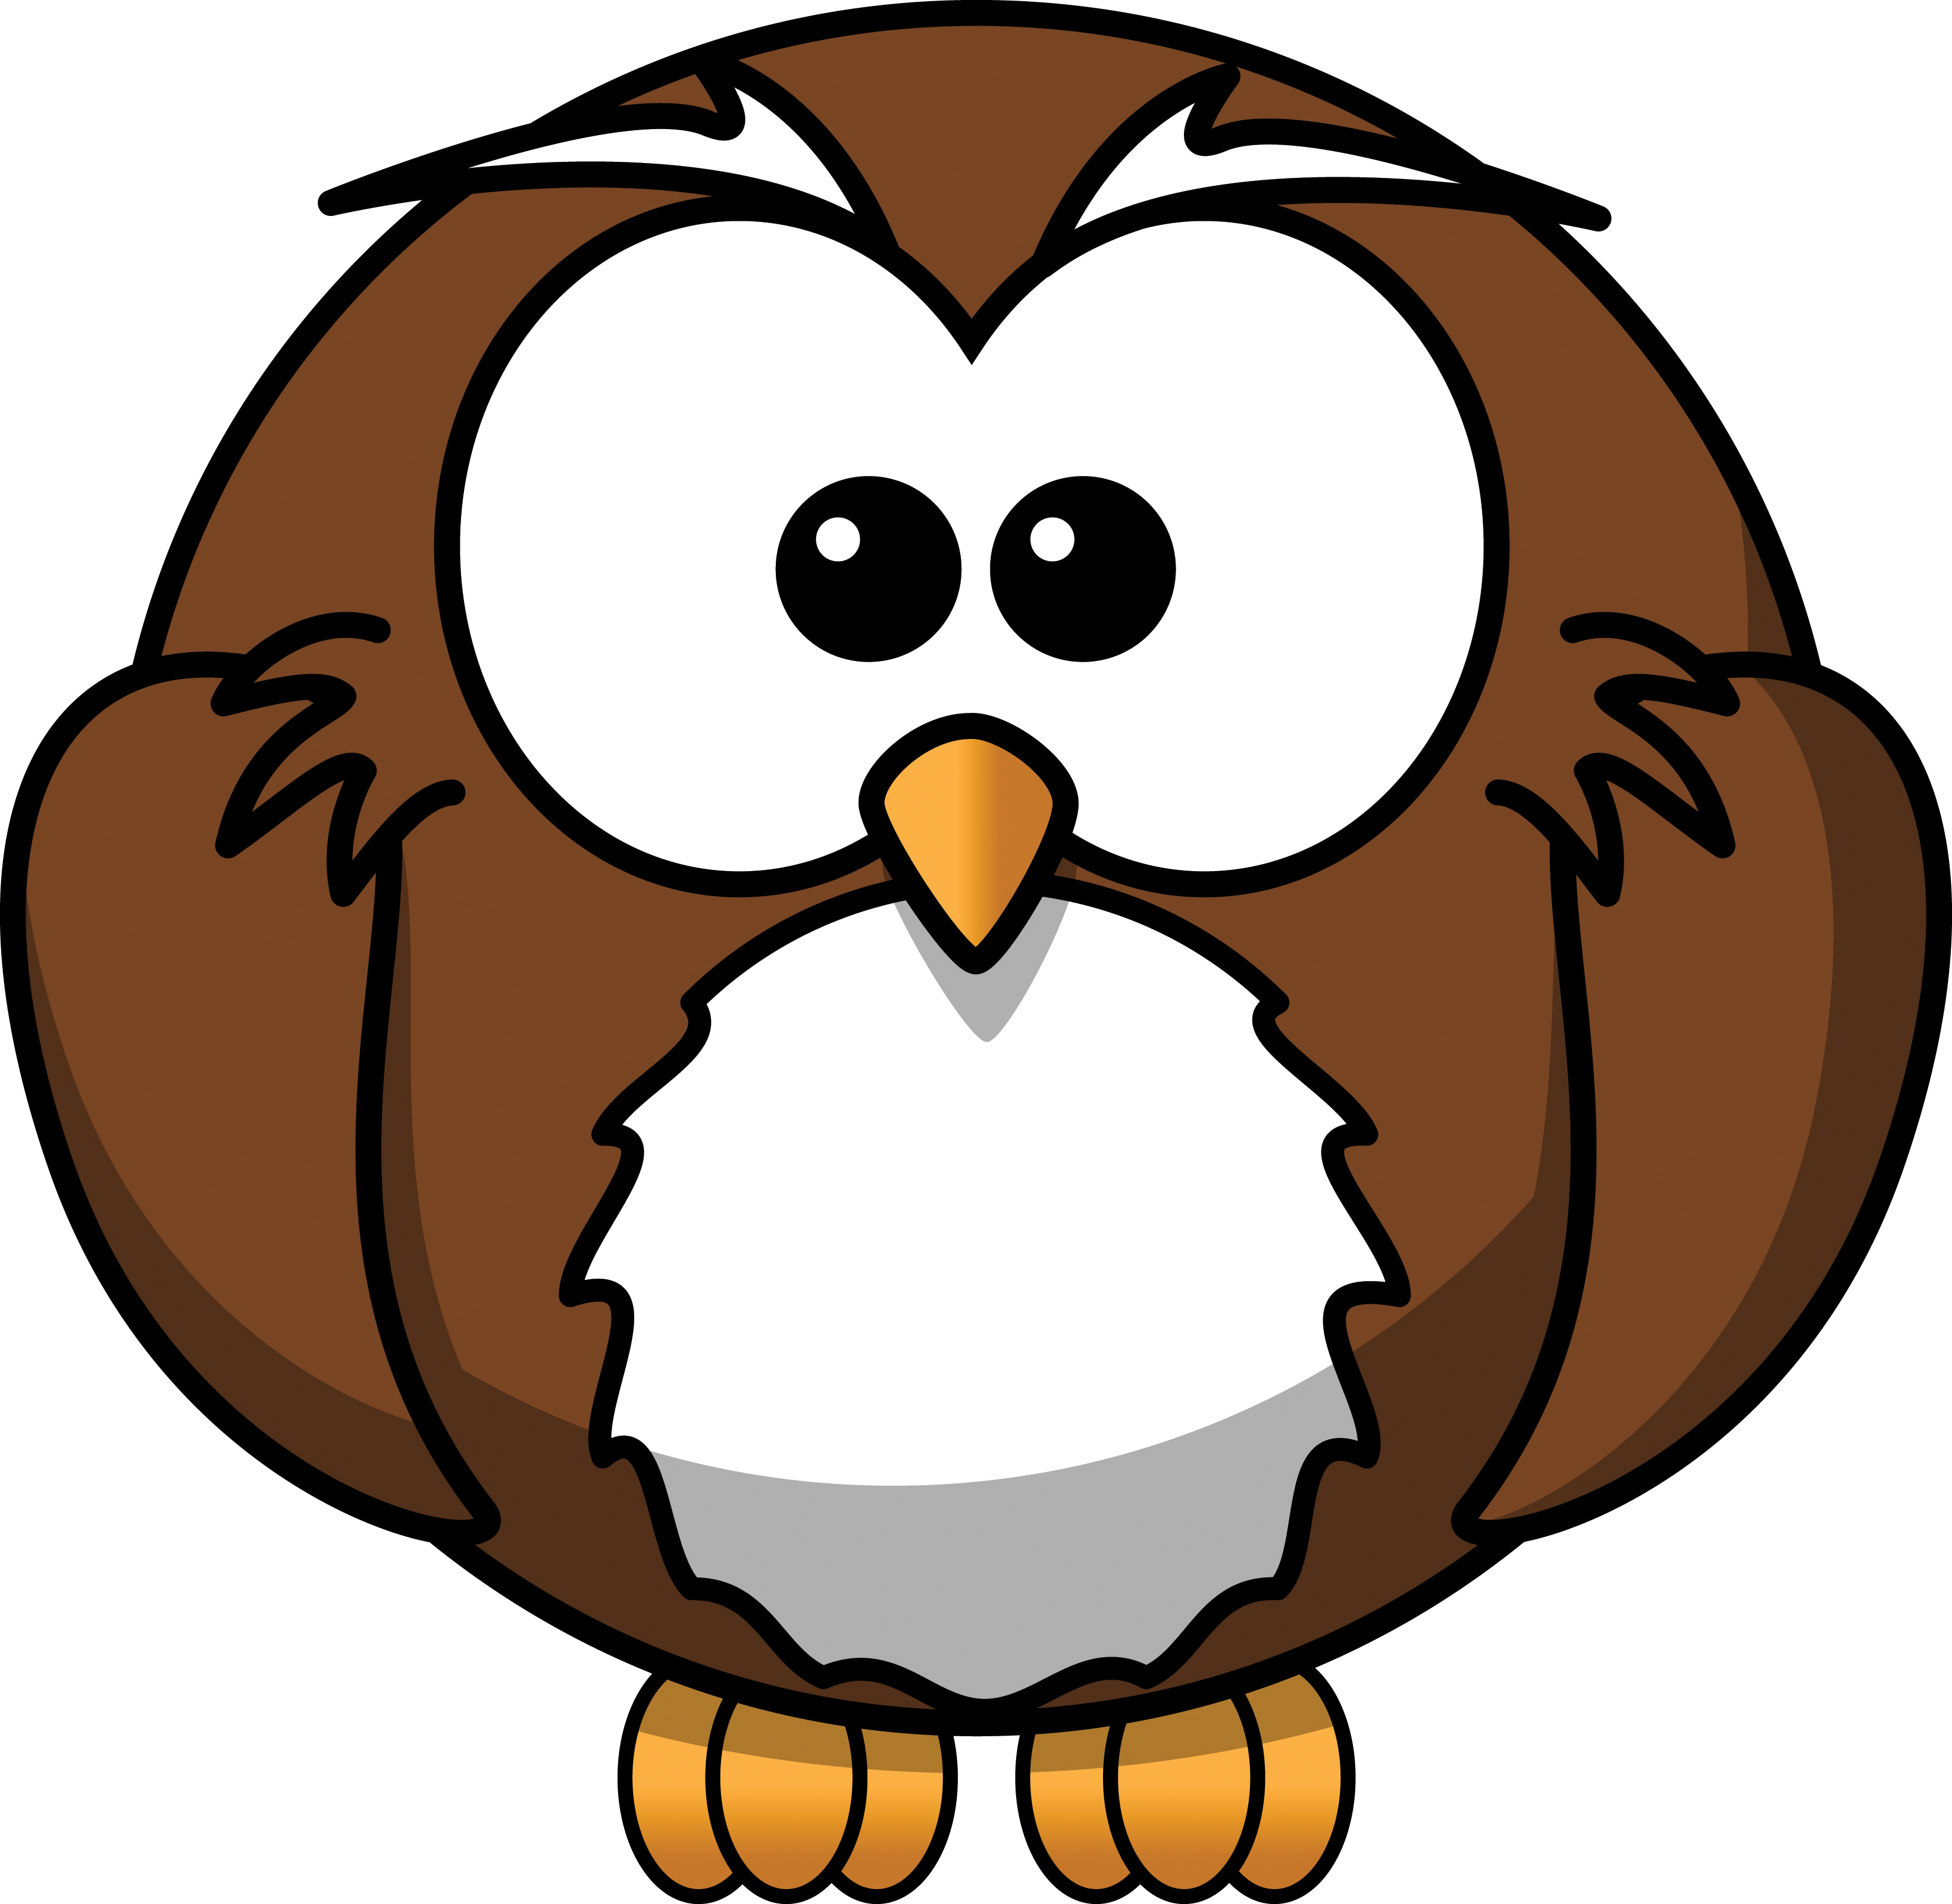 Wise panda free images. Pencil clipart owl